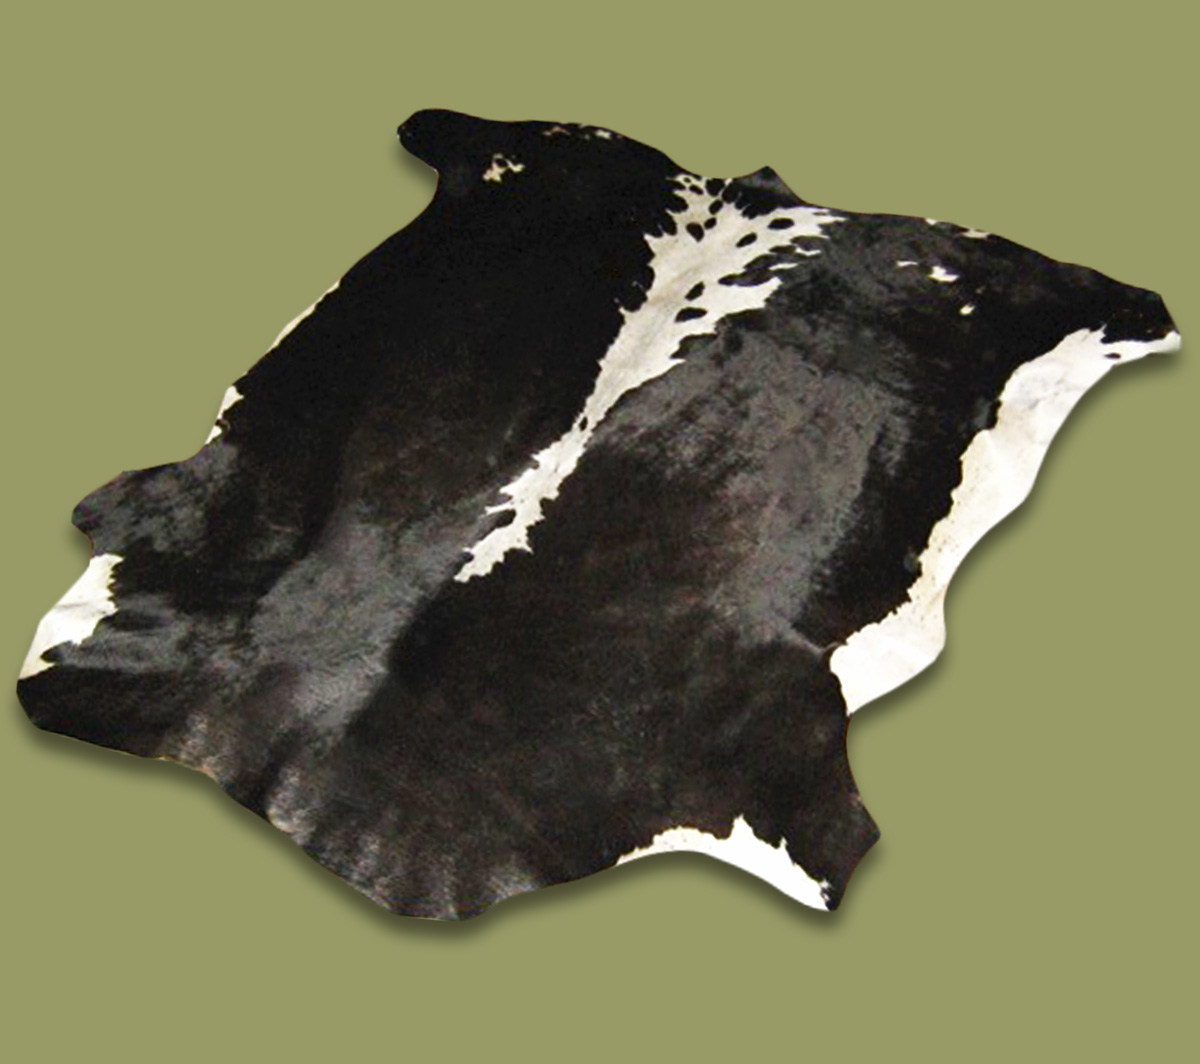 Nguni Hide.27 Black White - A GRADE HIDE